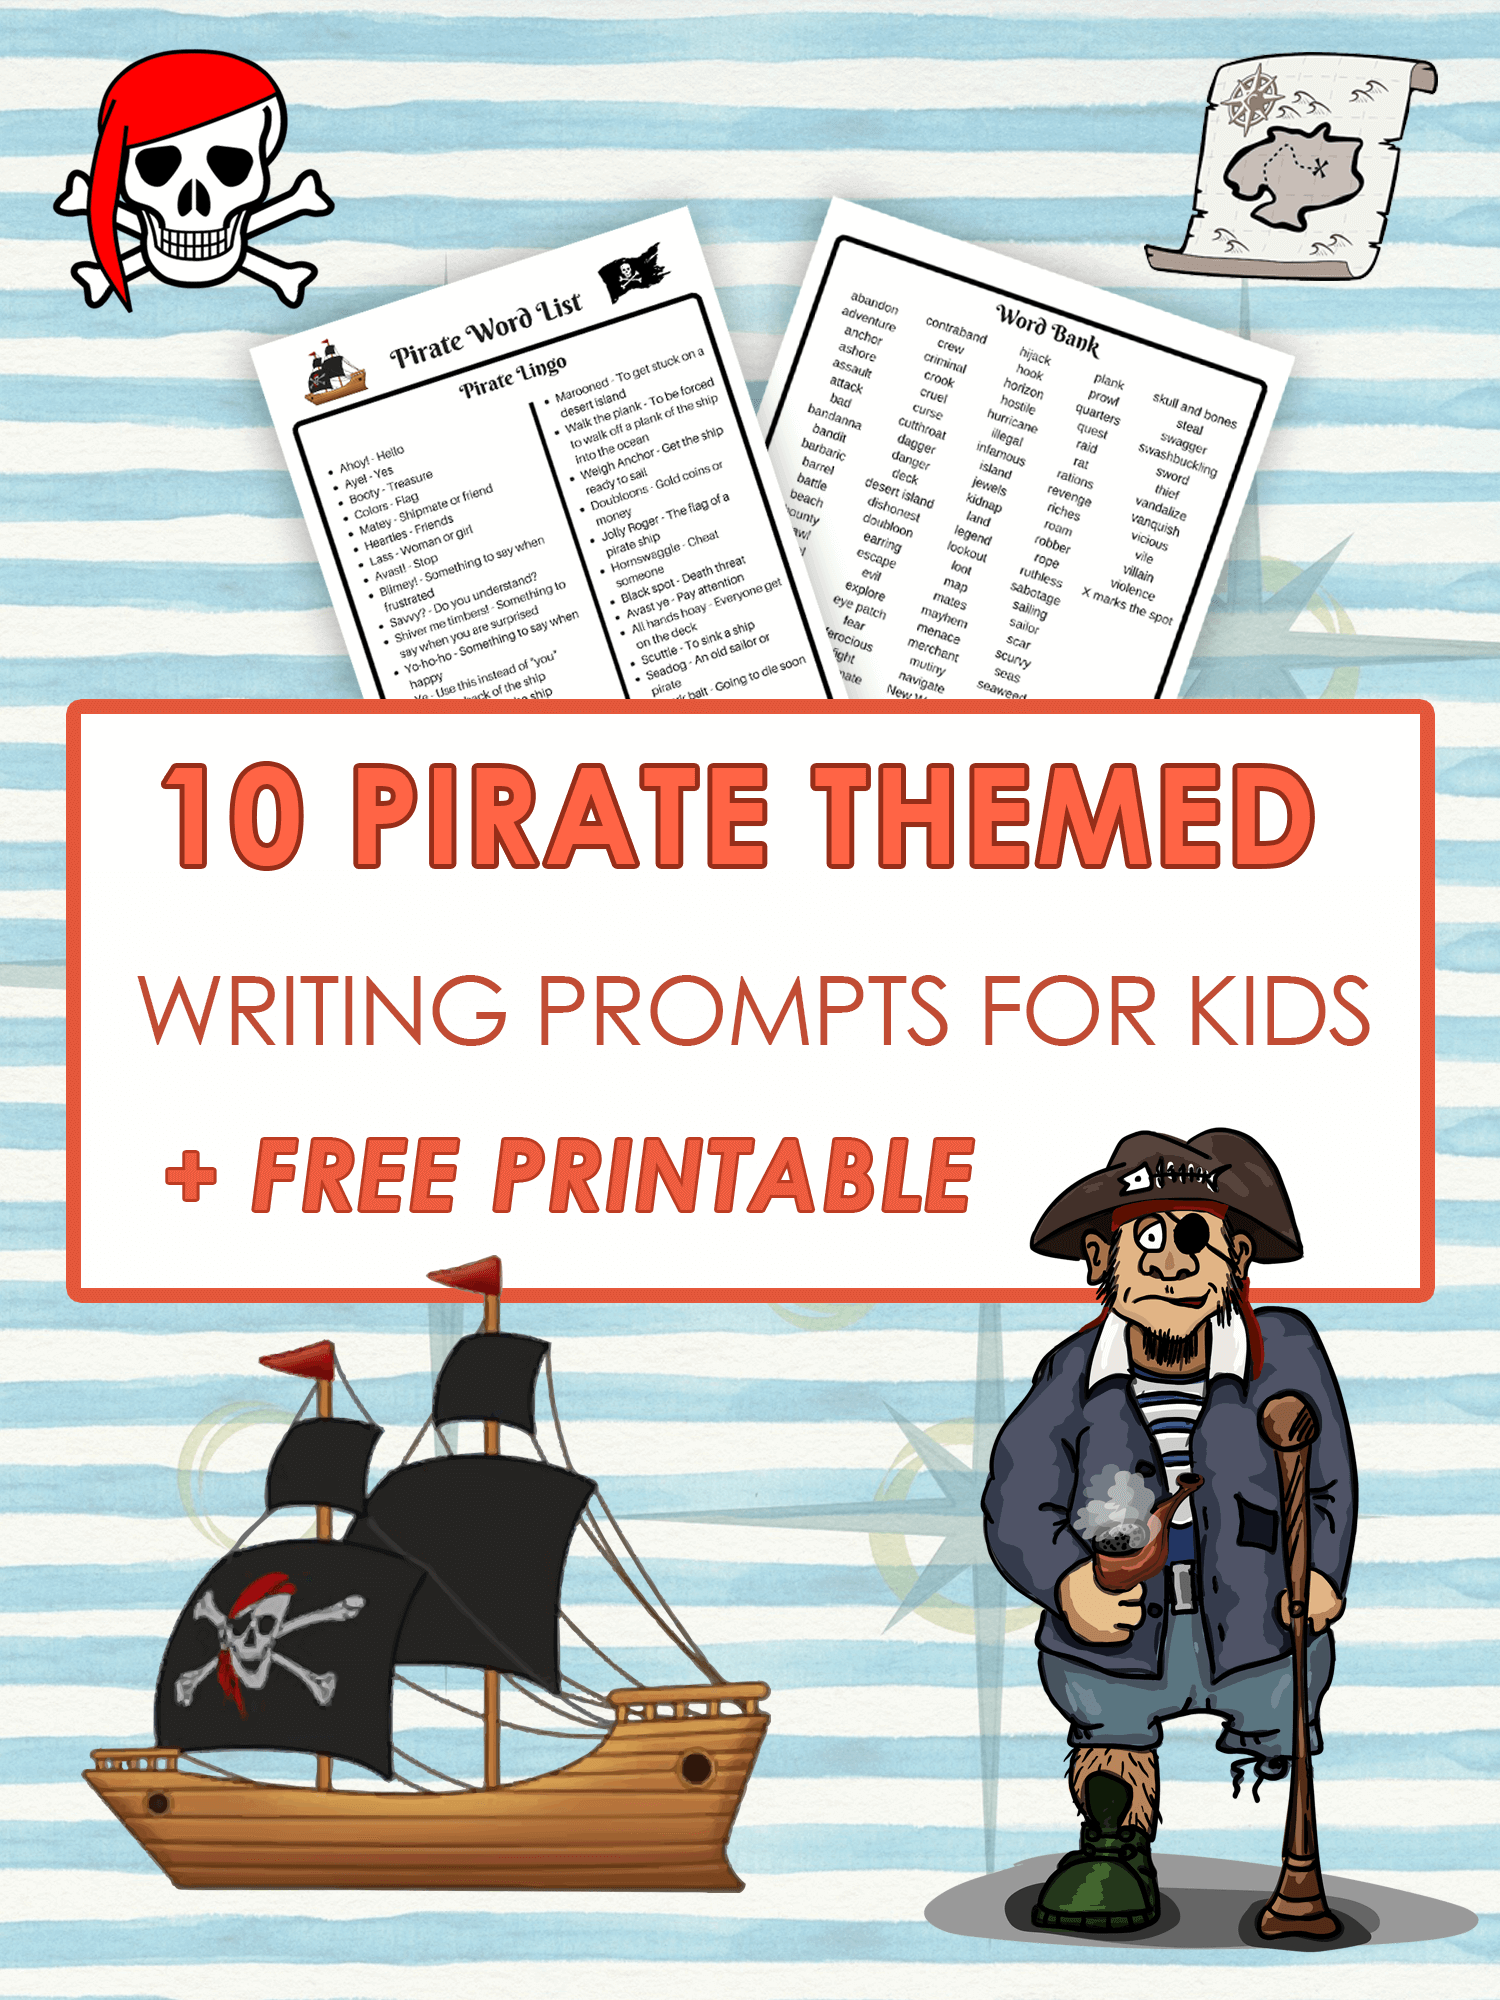 10 Pirate Themed Writing prompts for kids _free Printable_imagine forest